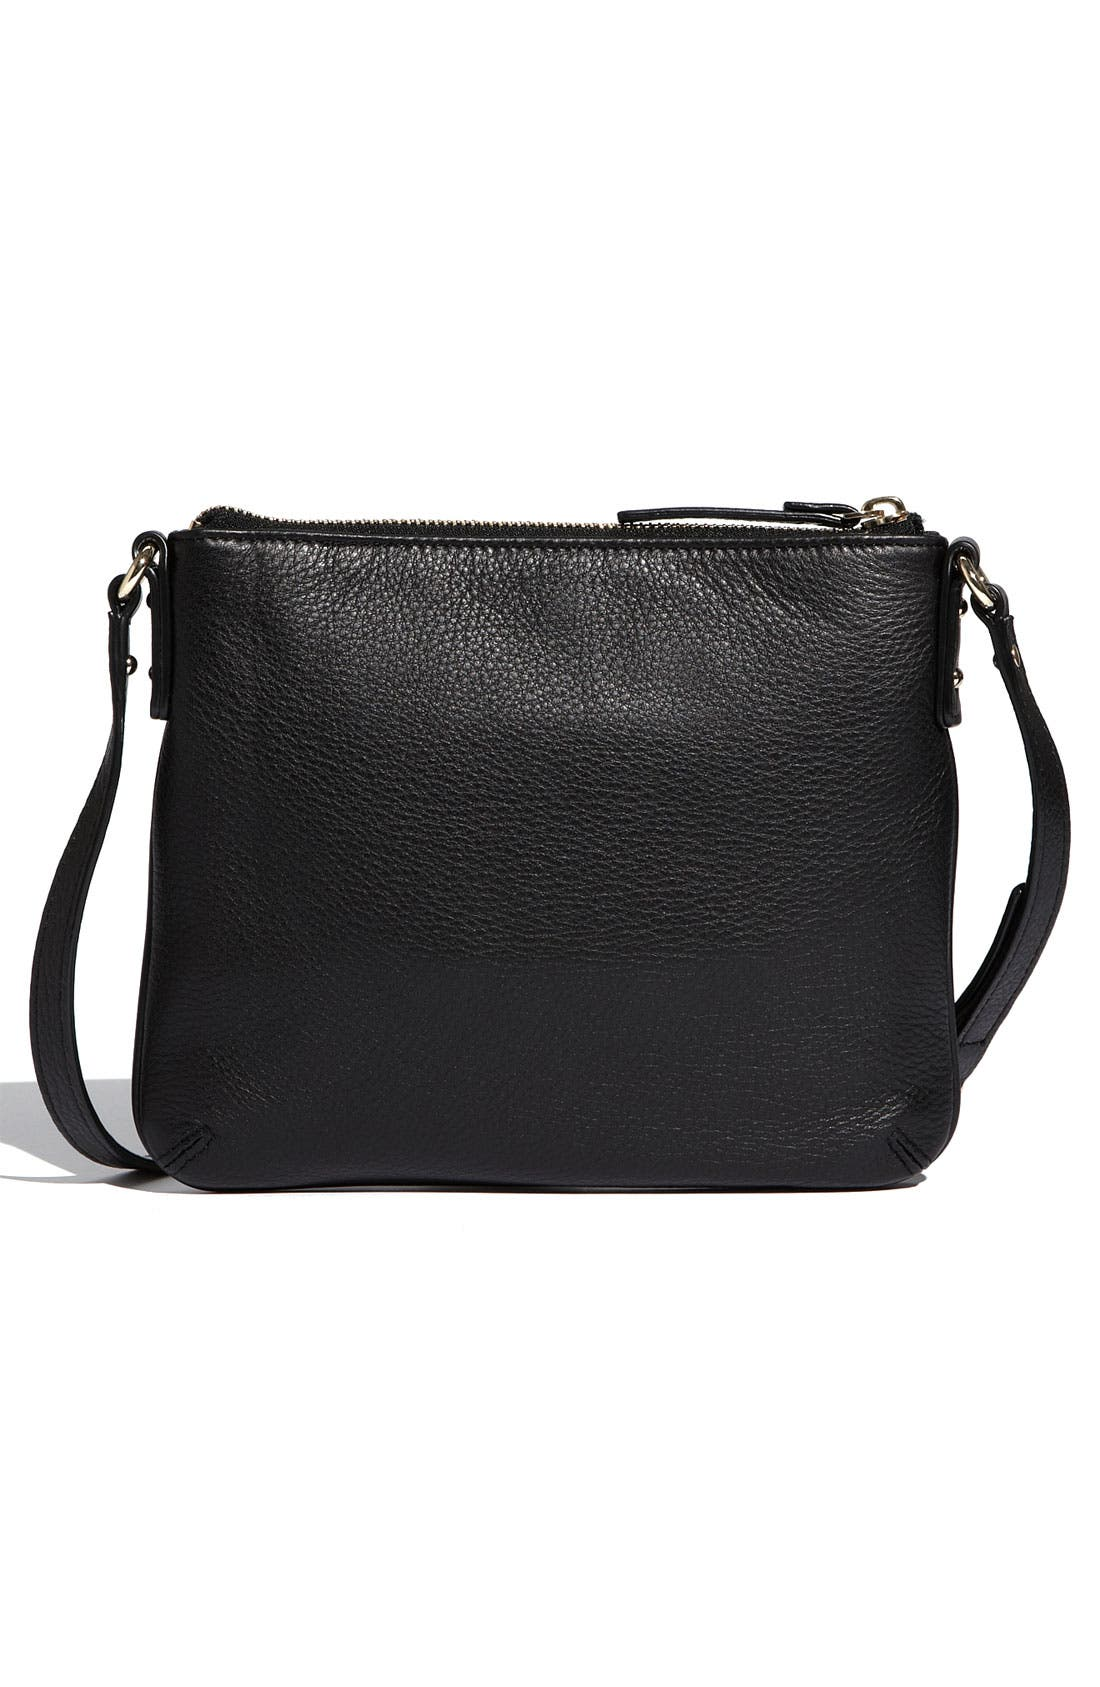 Alternate Image 3  - kate spade new york 'cobble hill - tenley' crossbody bag